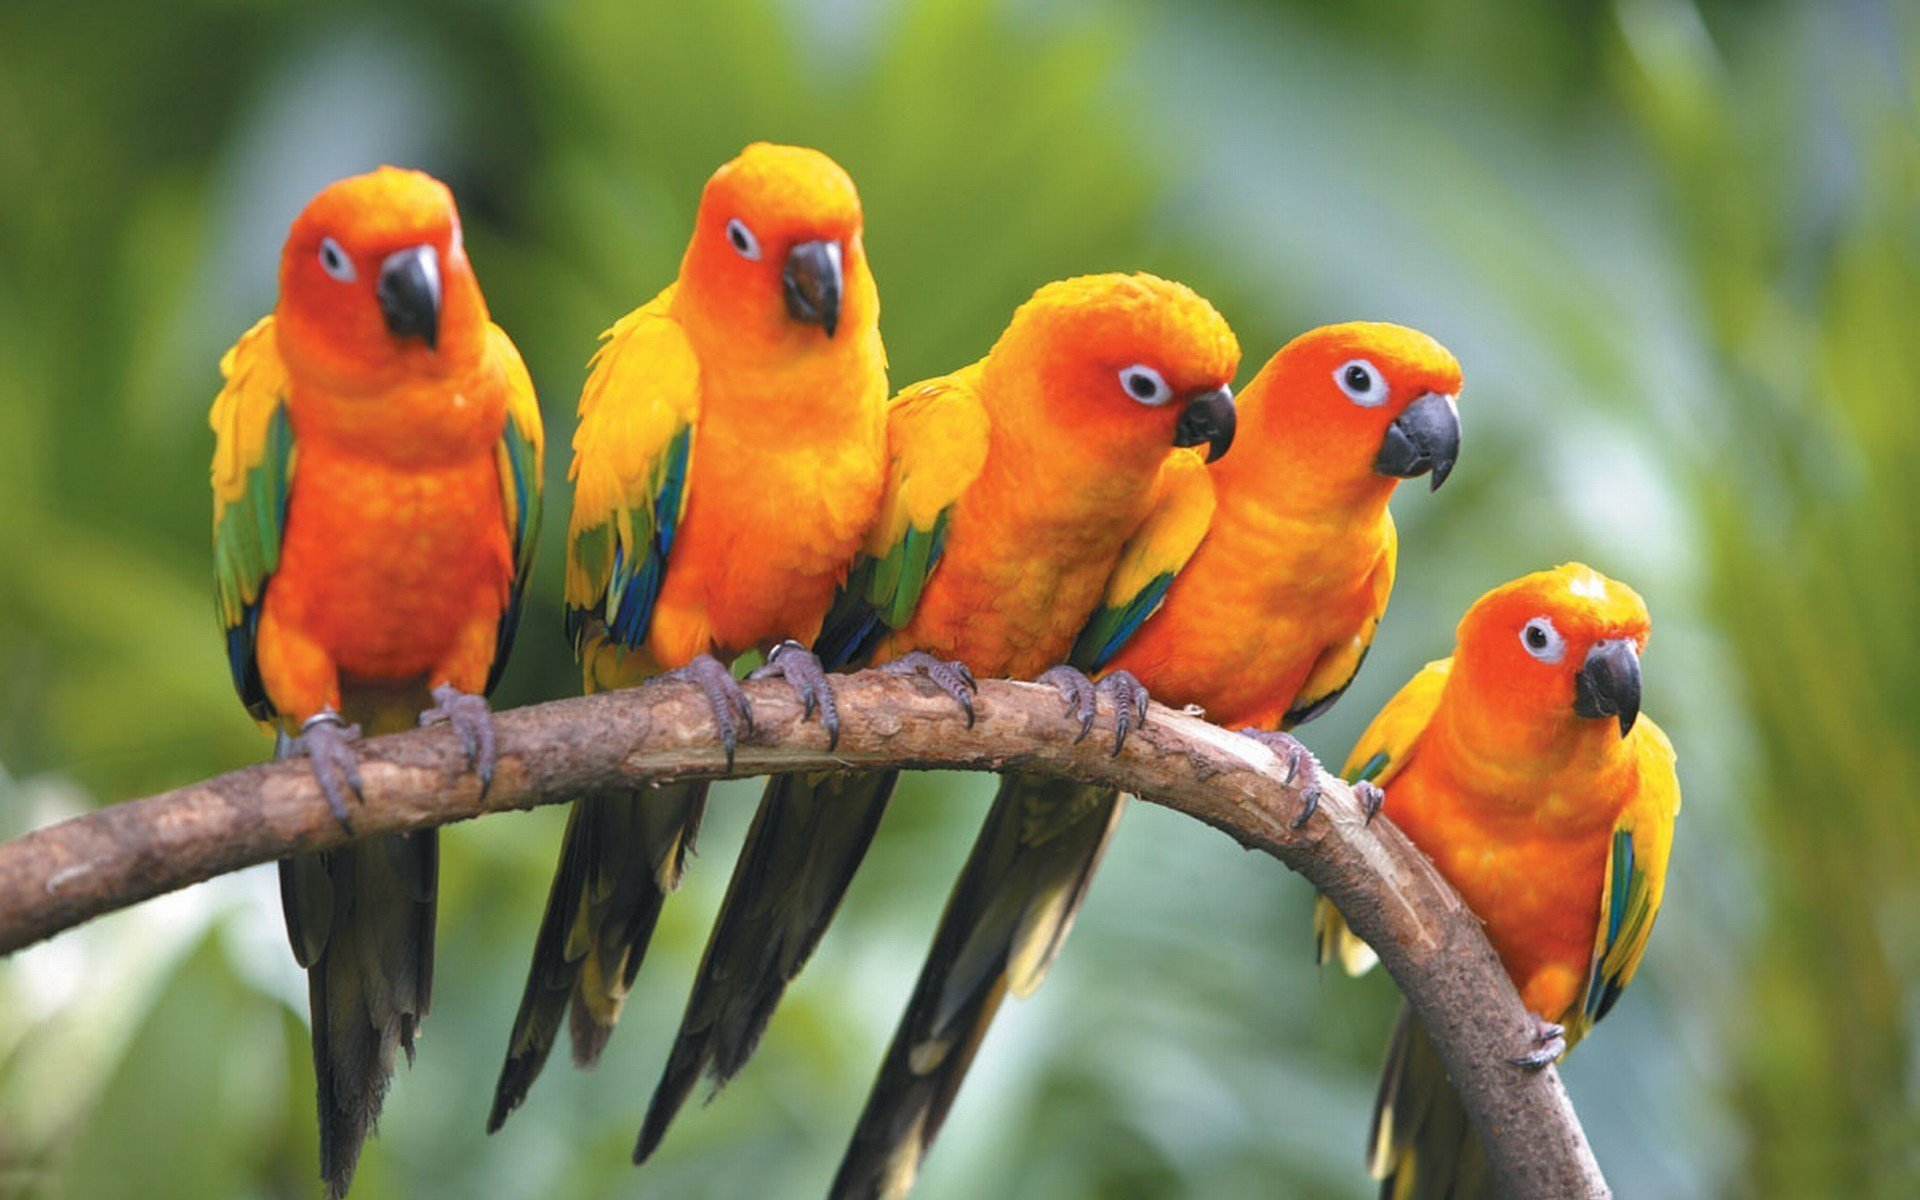 Parrot Pictures 37 Best HD Pictures of Parrot HD Quality Parrot 1920x1200